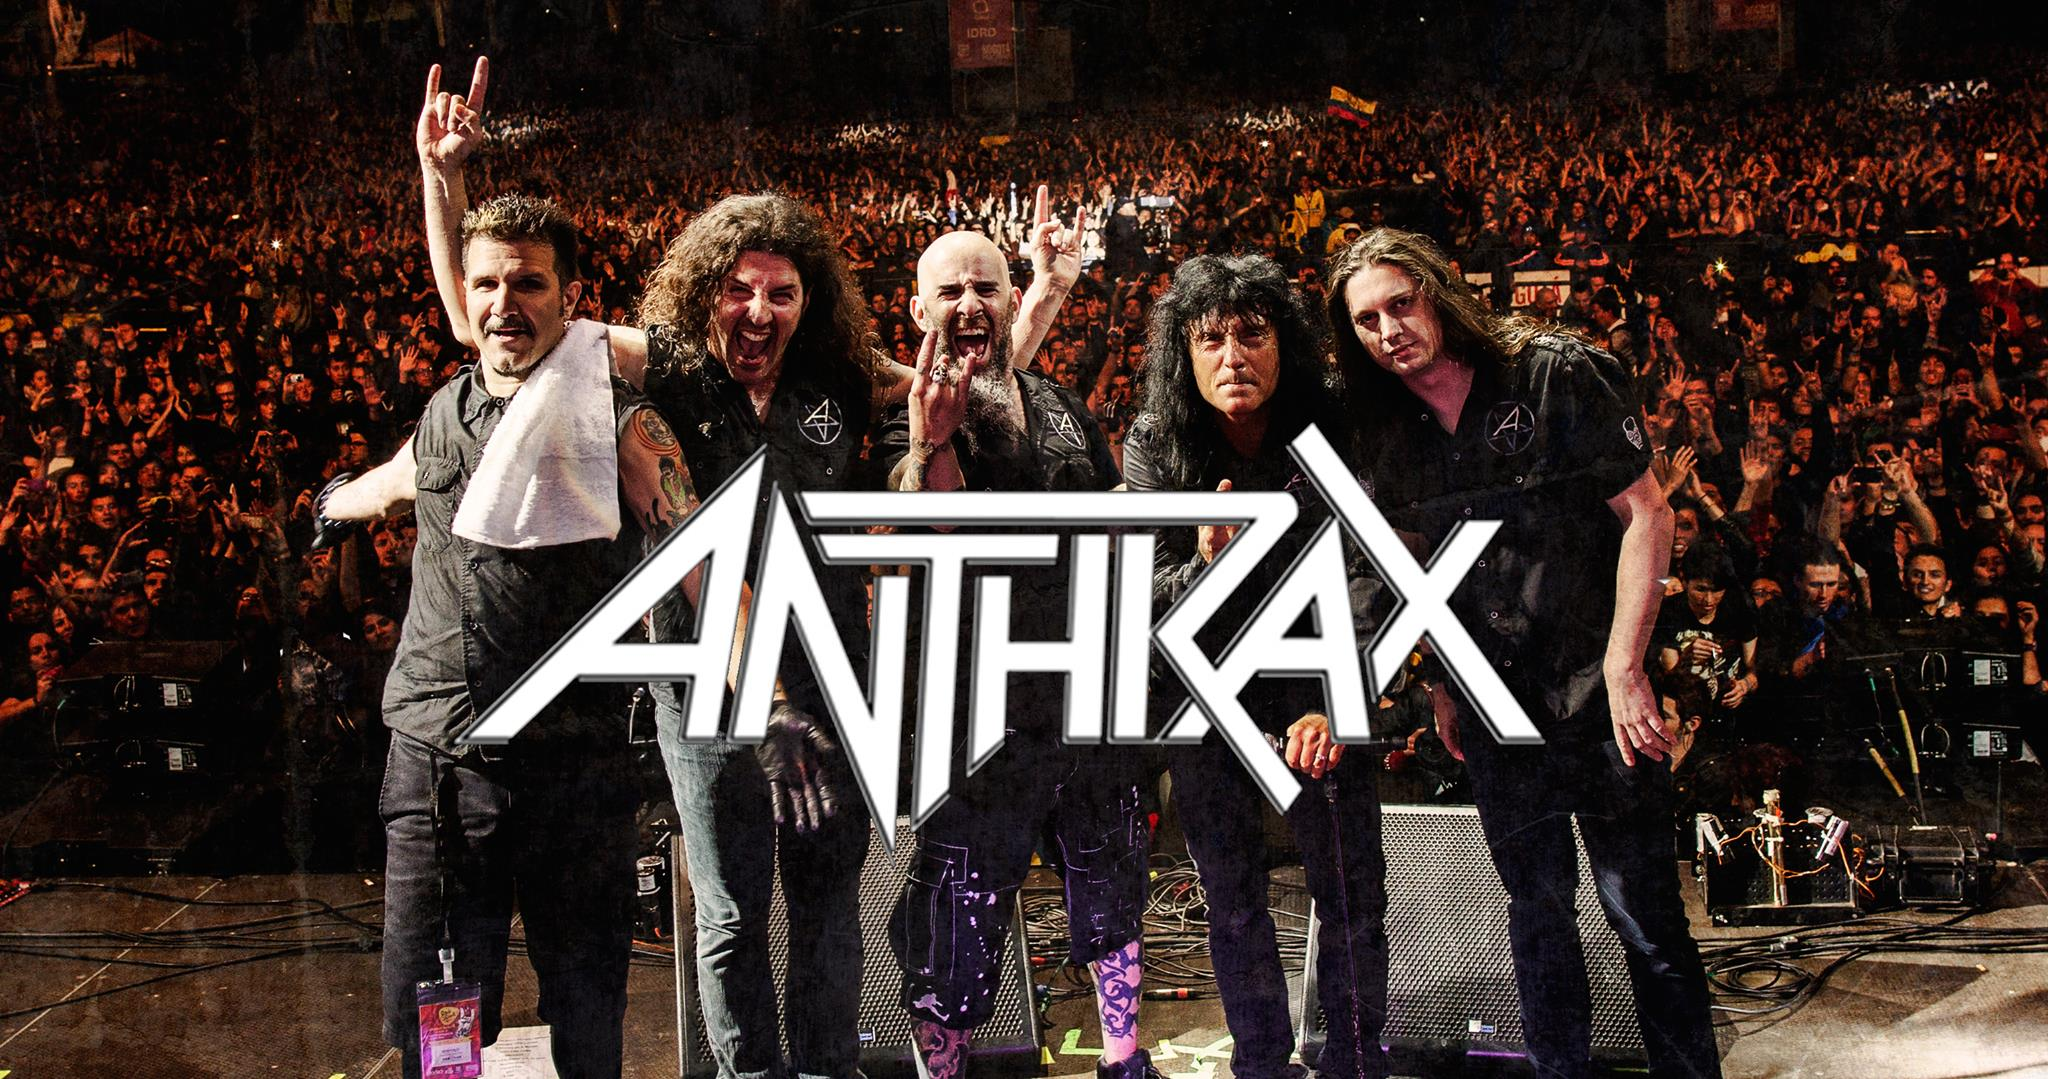 Anthrax Coming To Fayetteville At George S Feb 3